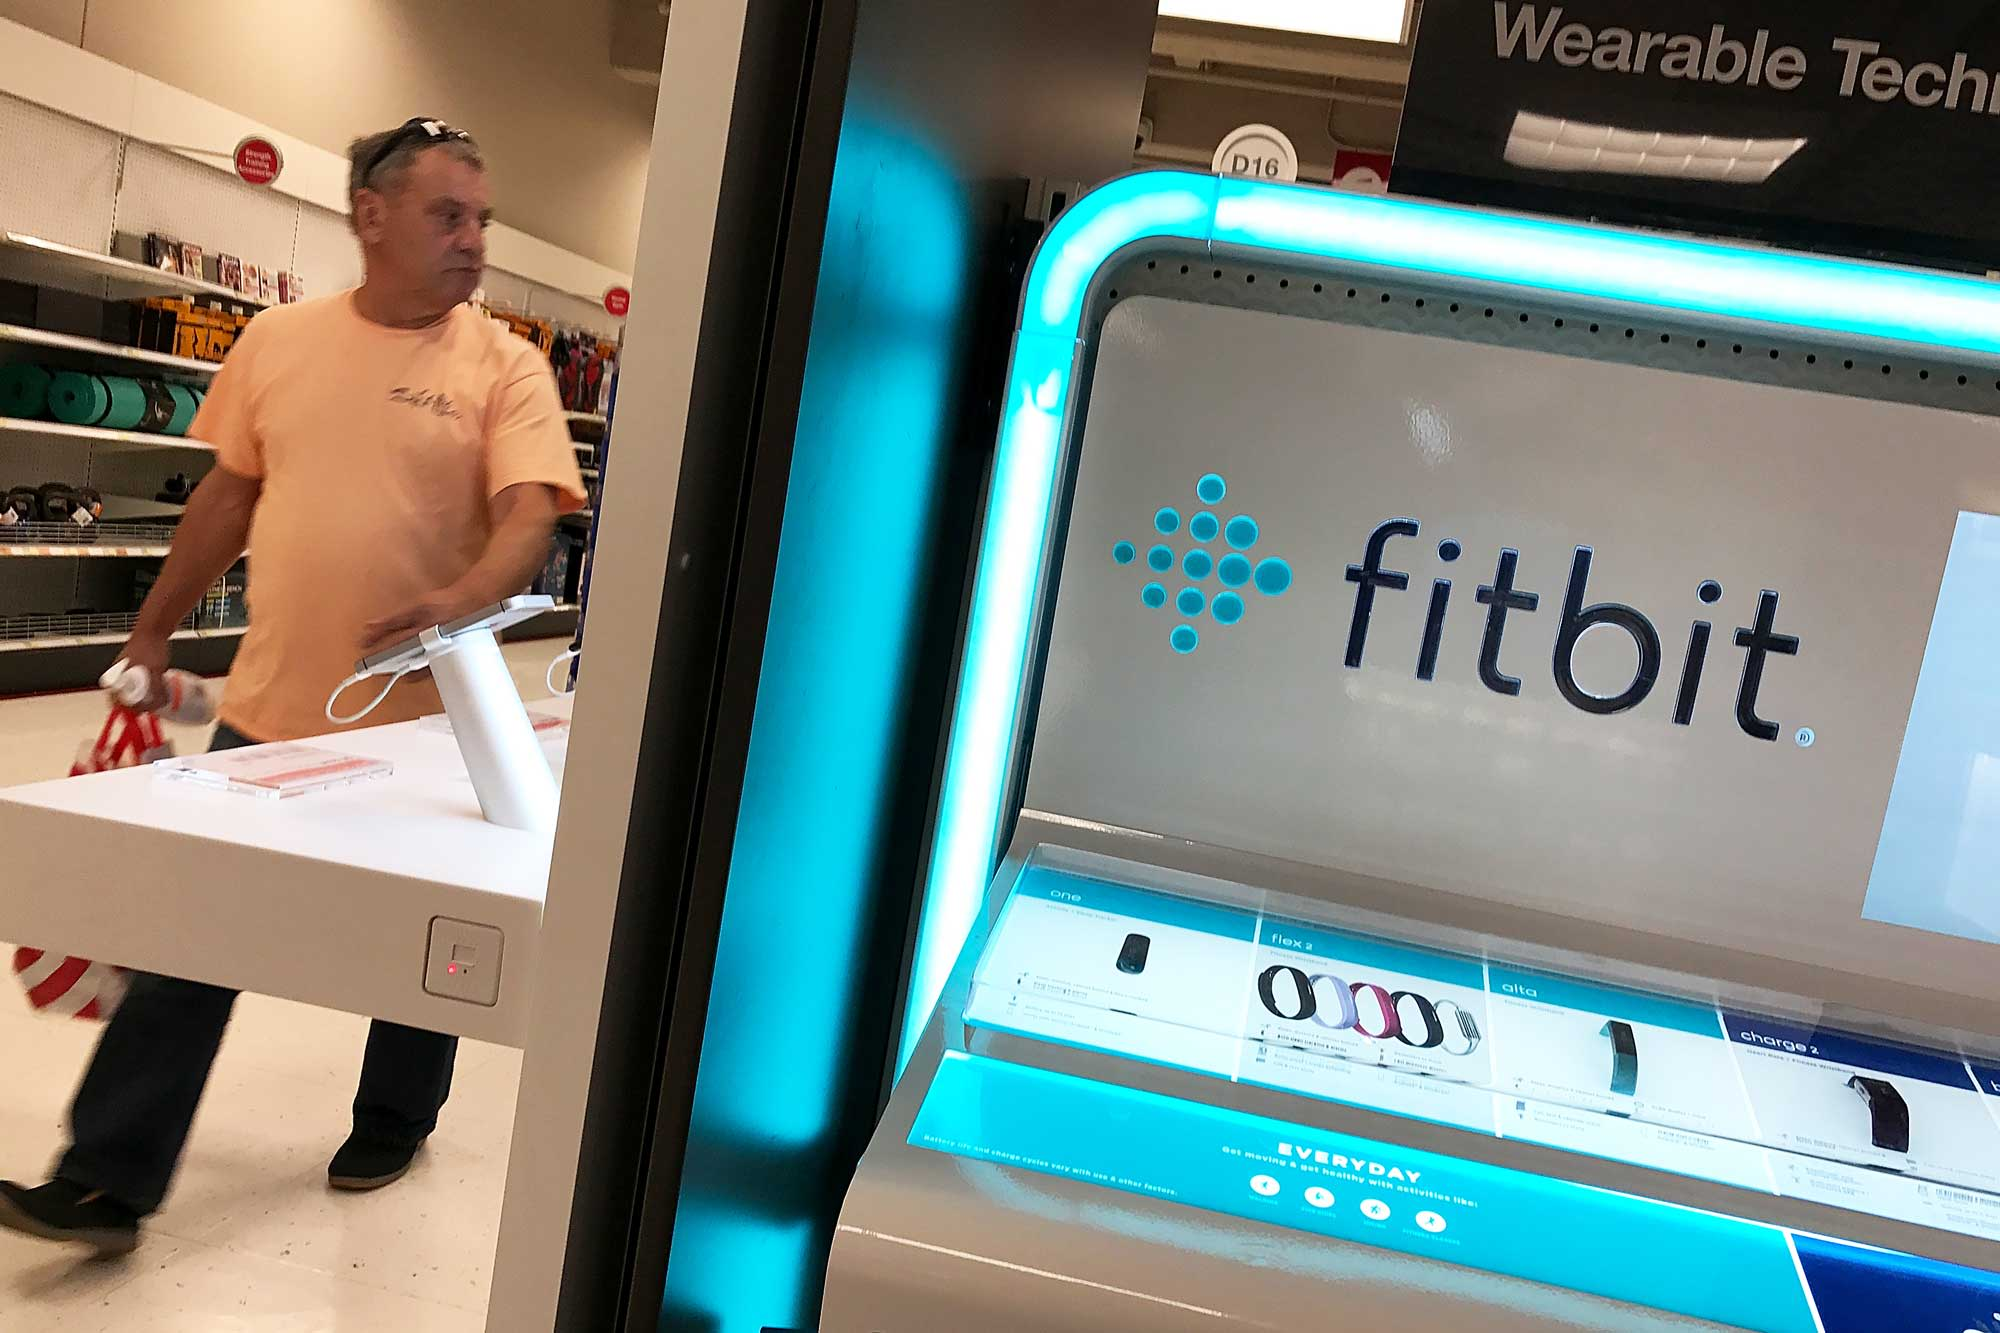 Stocks making the biggest moves after hours: Fitbit, Qualcomm and more